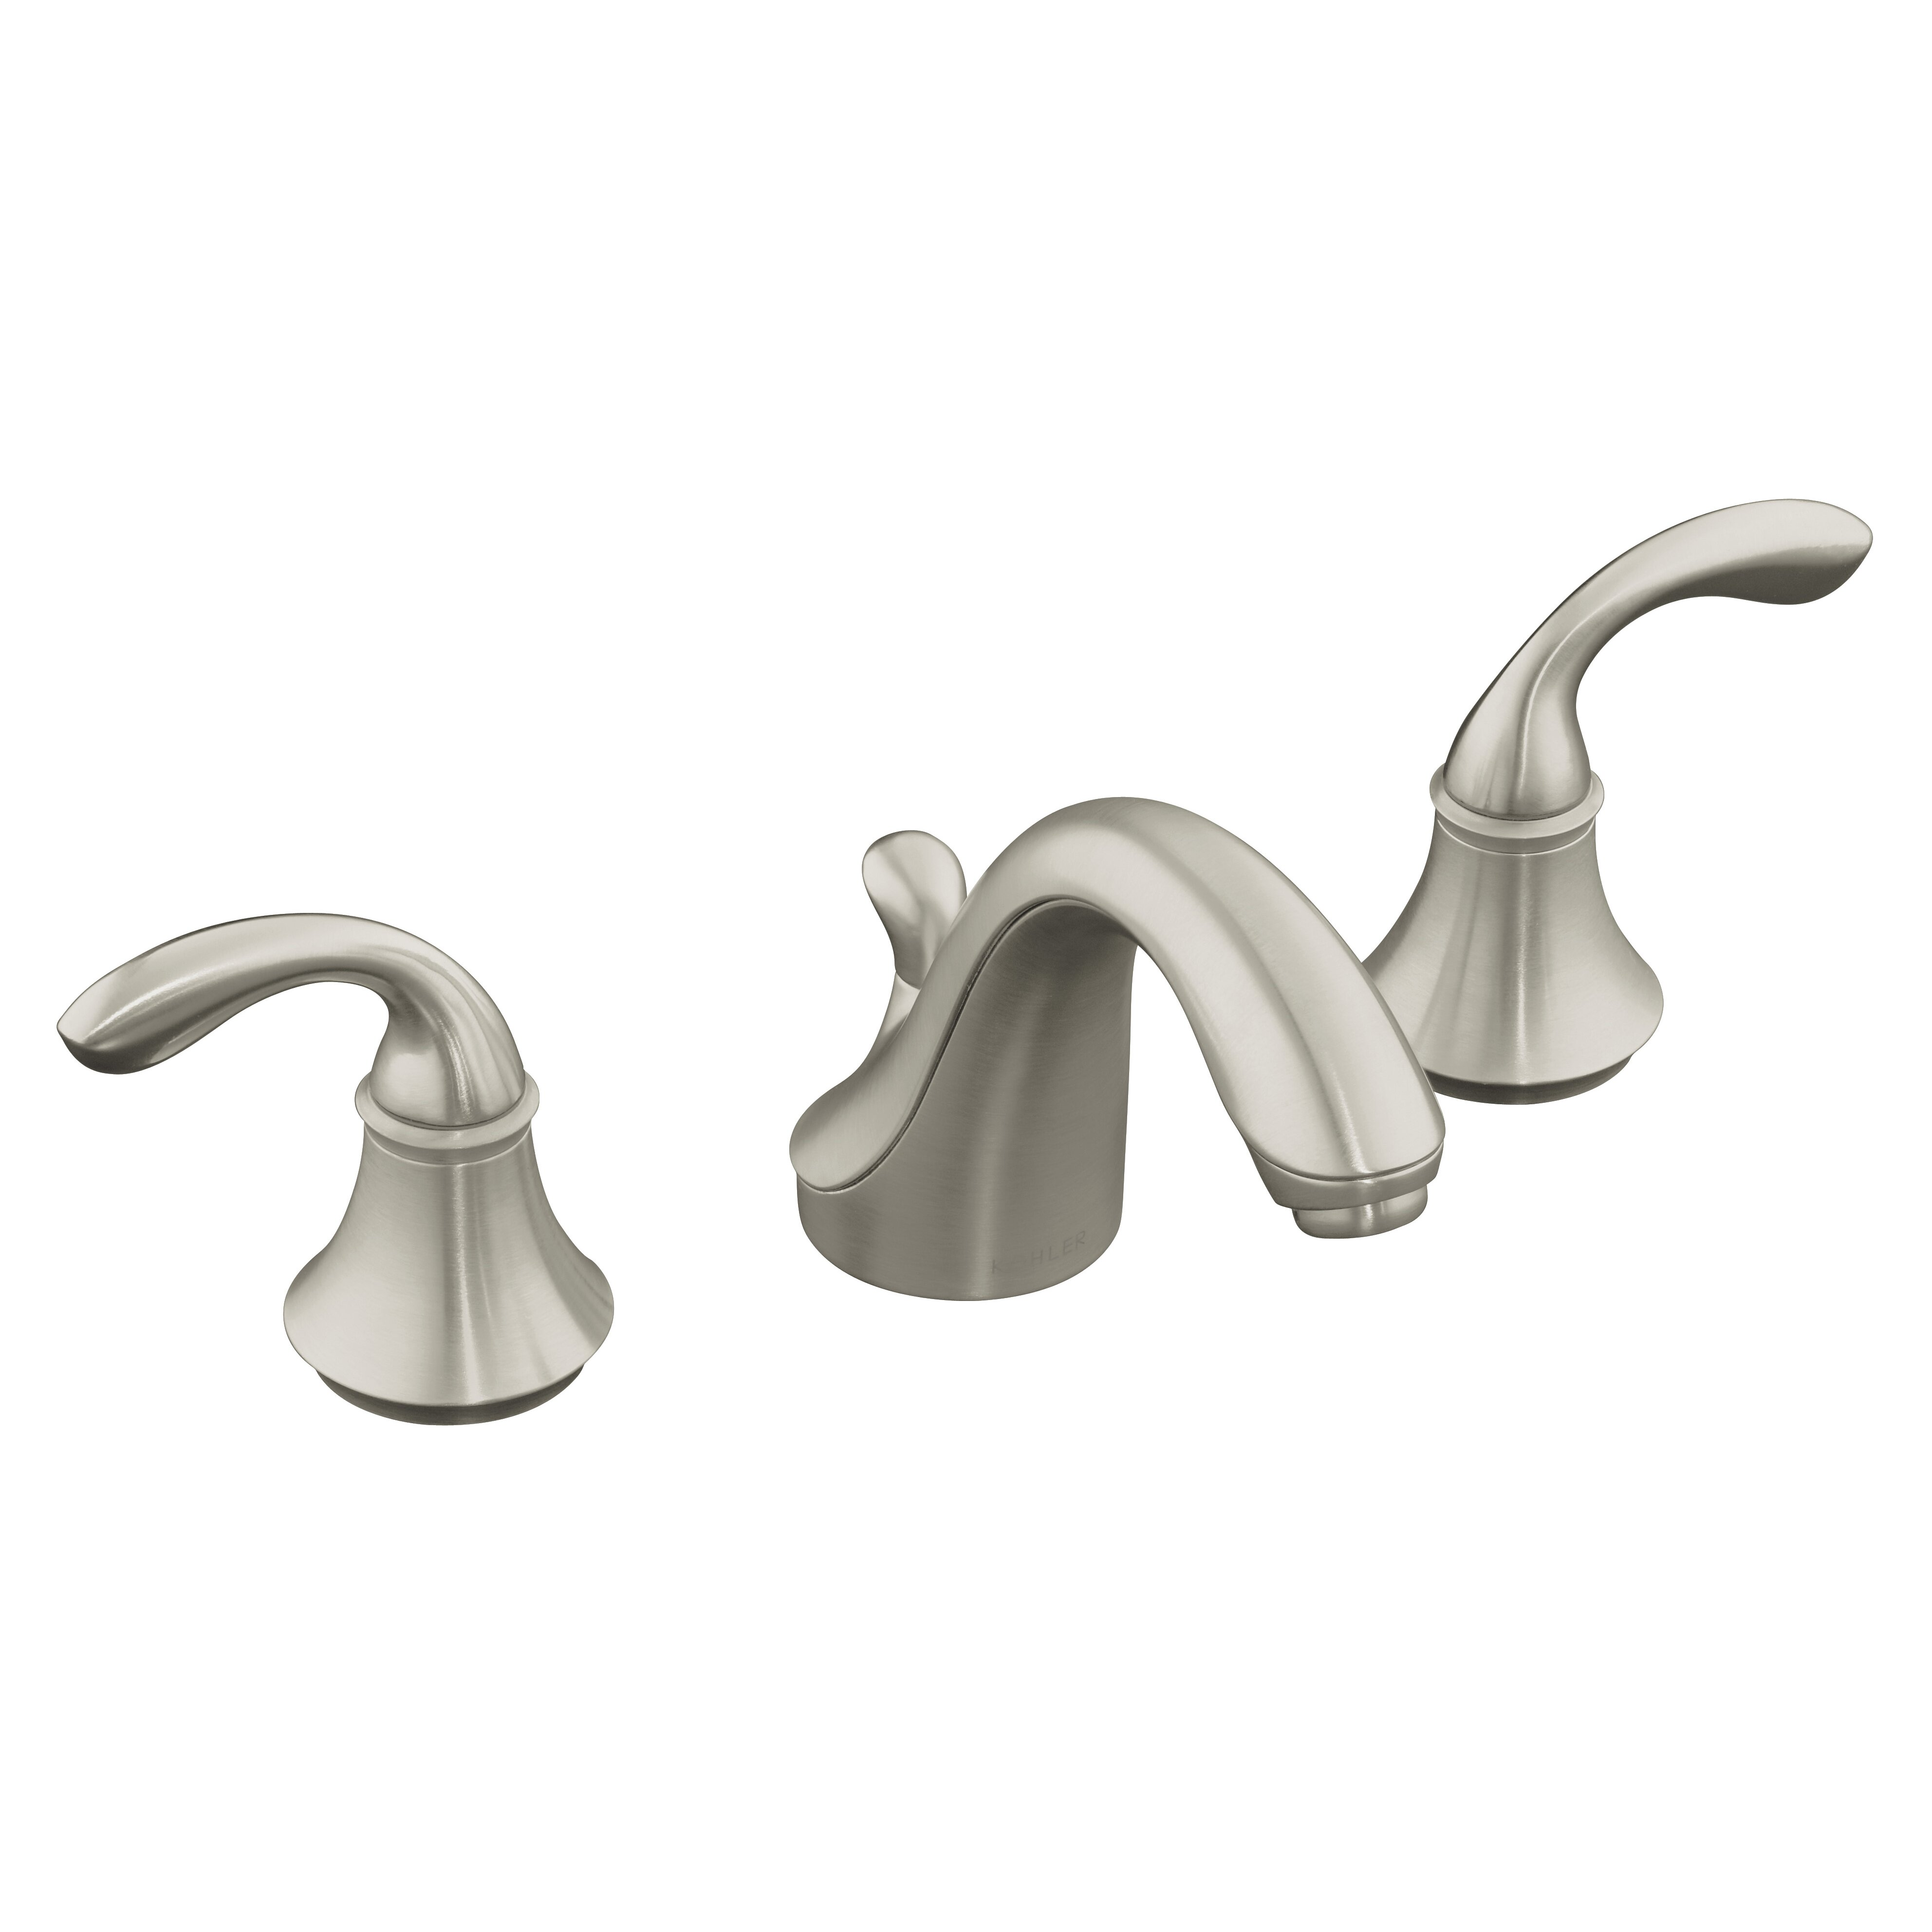 Bathroom Faucets Wayfair kohler bathroom faucets wayfair. kohler bathroom faucets wayfair